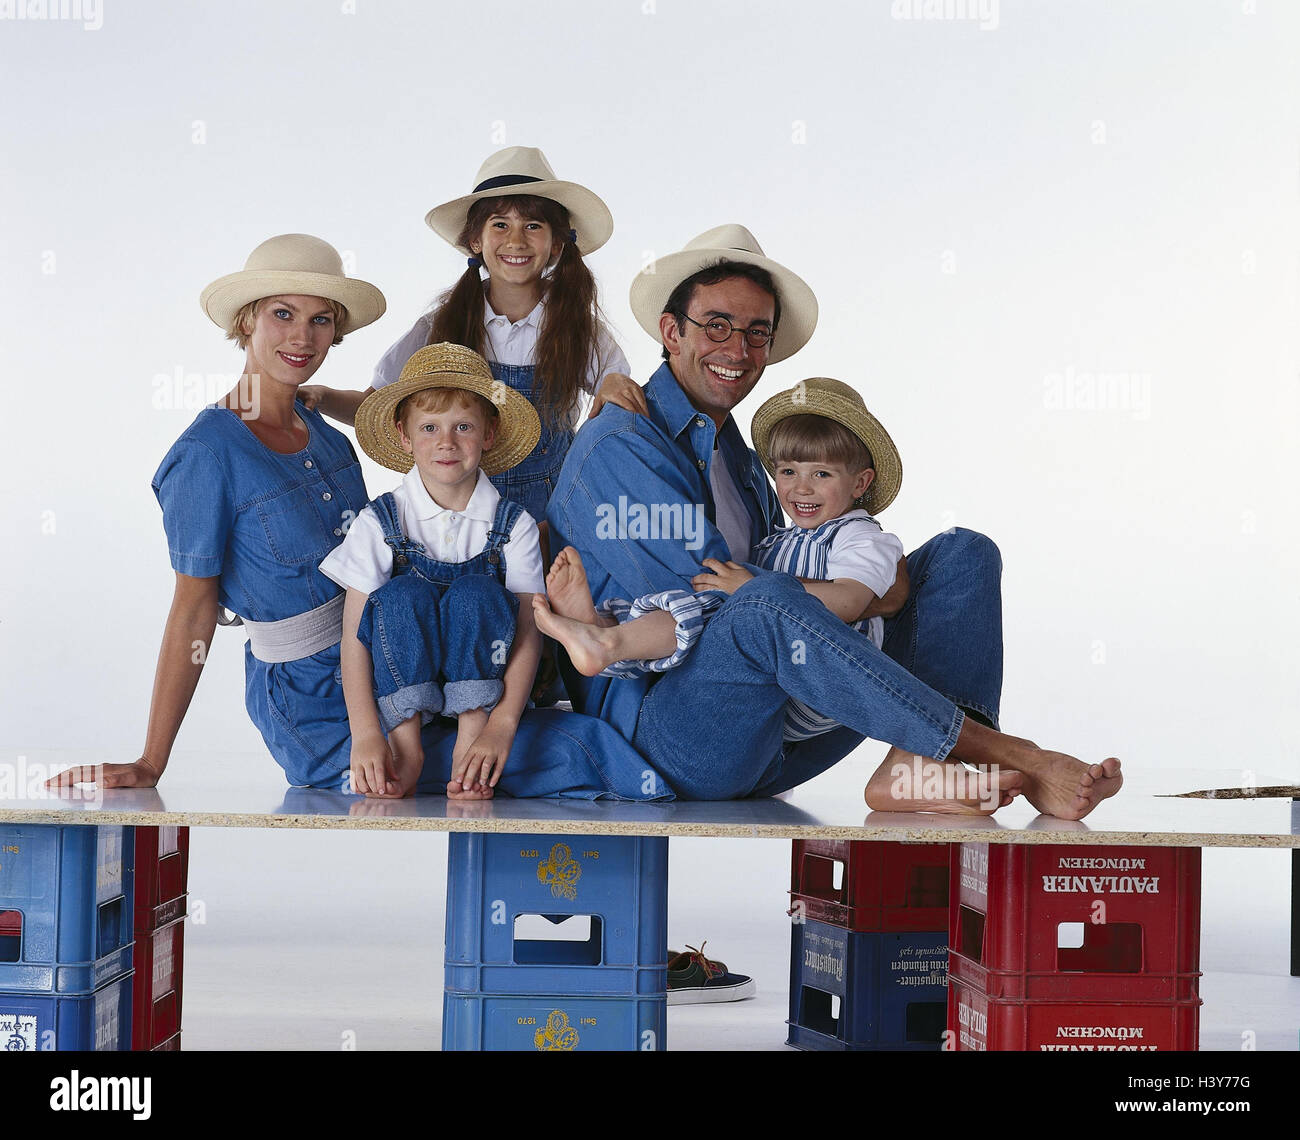 Family, hats, happy, hand, head, rest on, there, smile, group picture parents, woman, man, children, boys, girls, Stock Photo